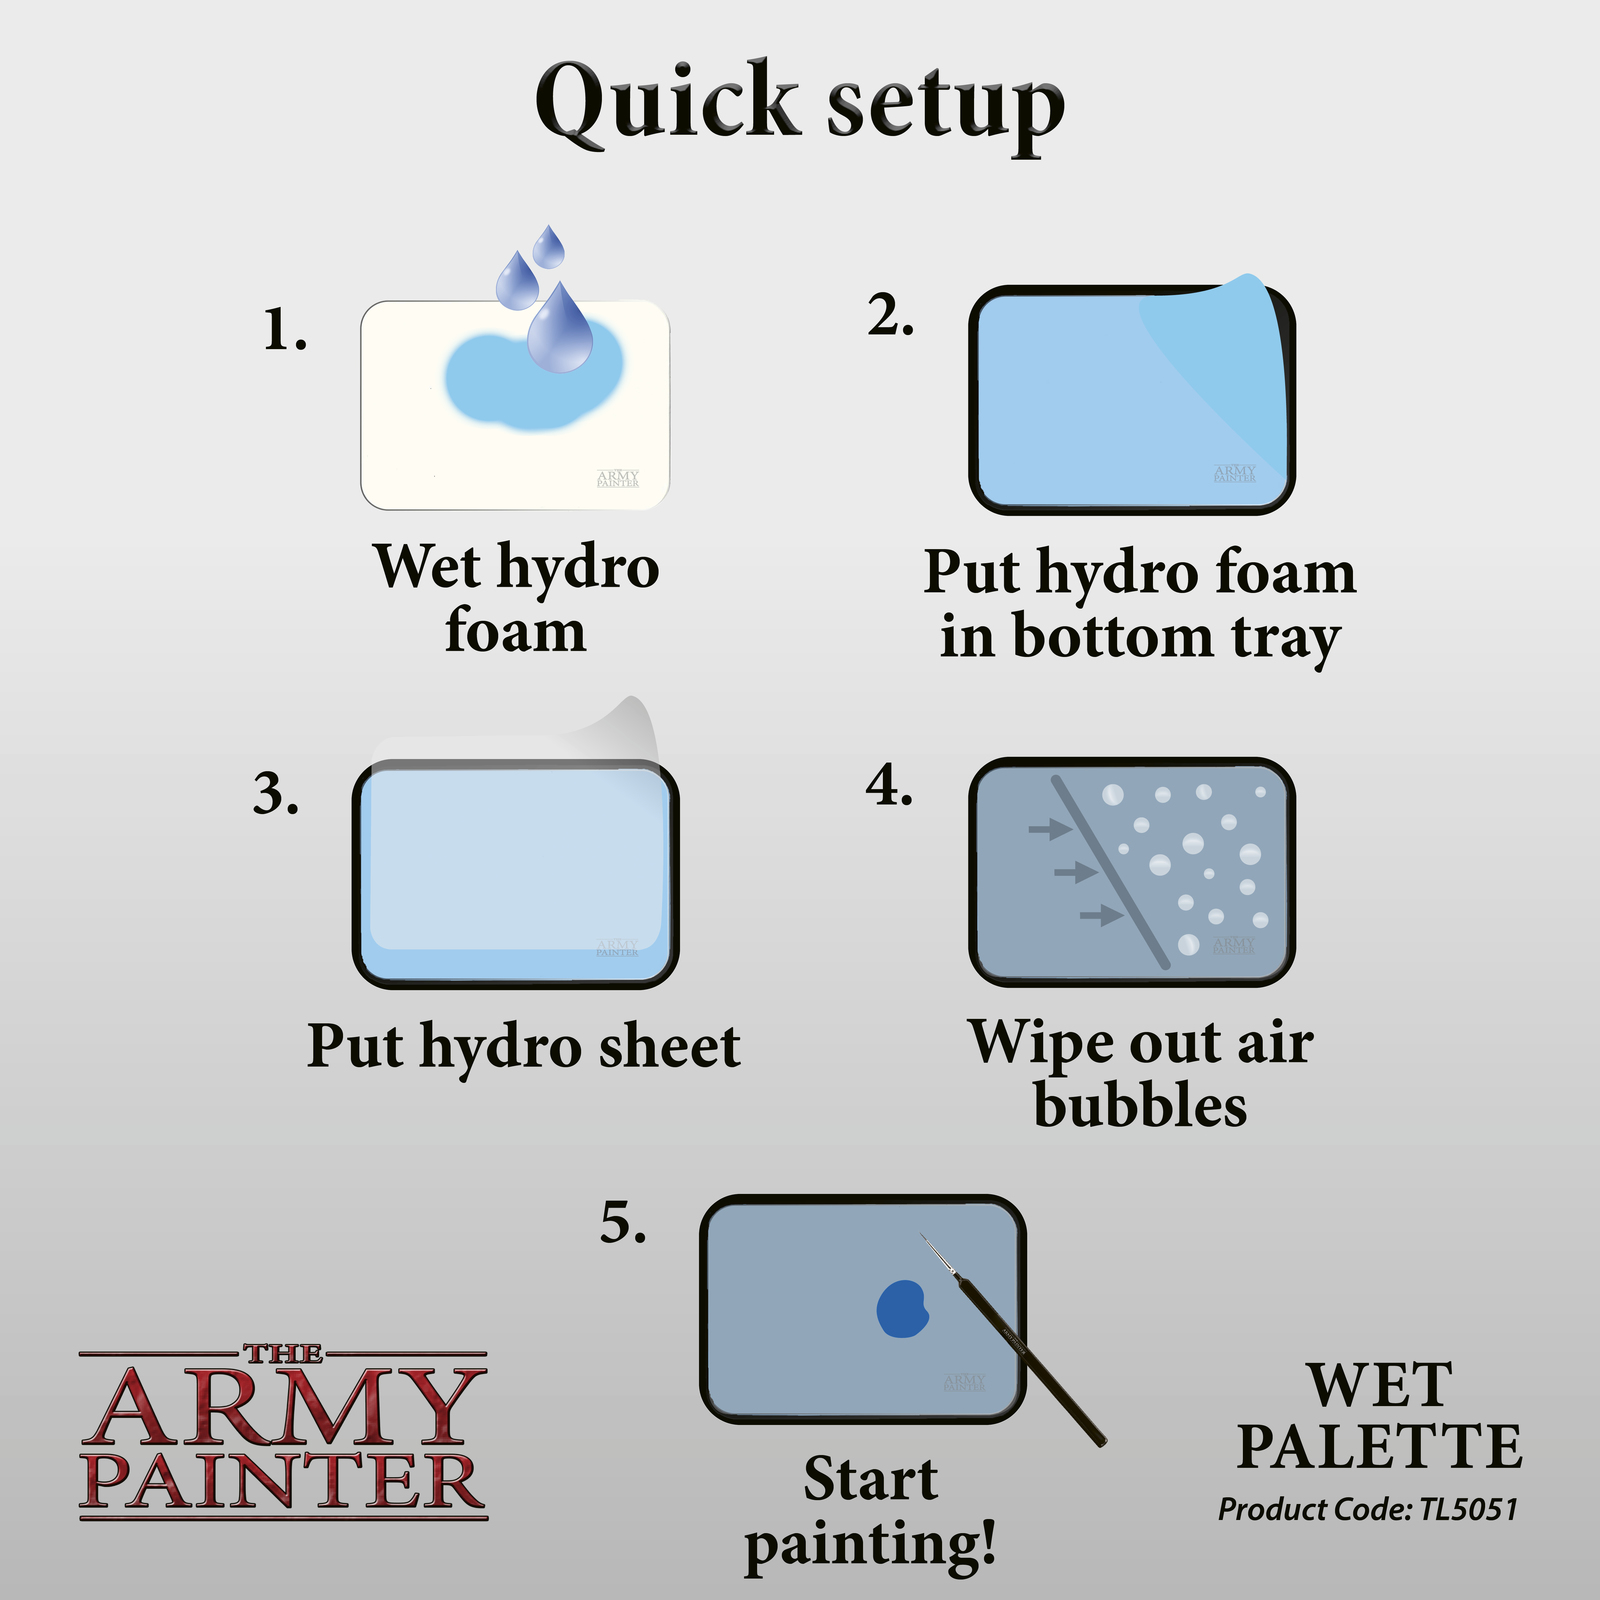 Army Painter Wet Palette image